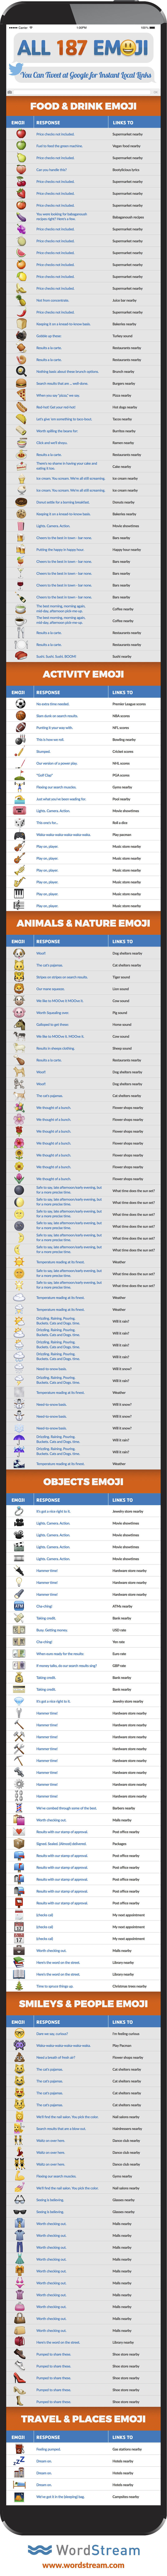 every emoji you can tweet at google for instant local links infographic